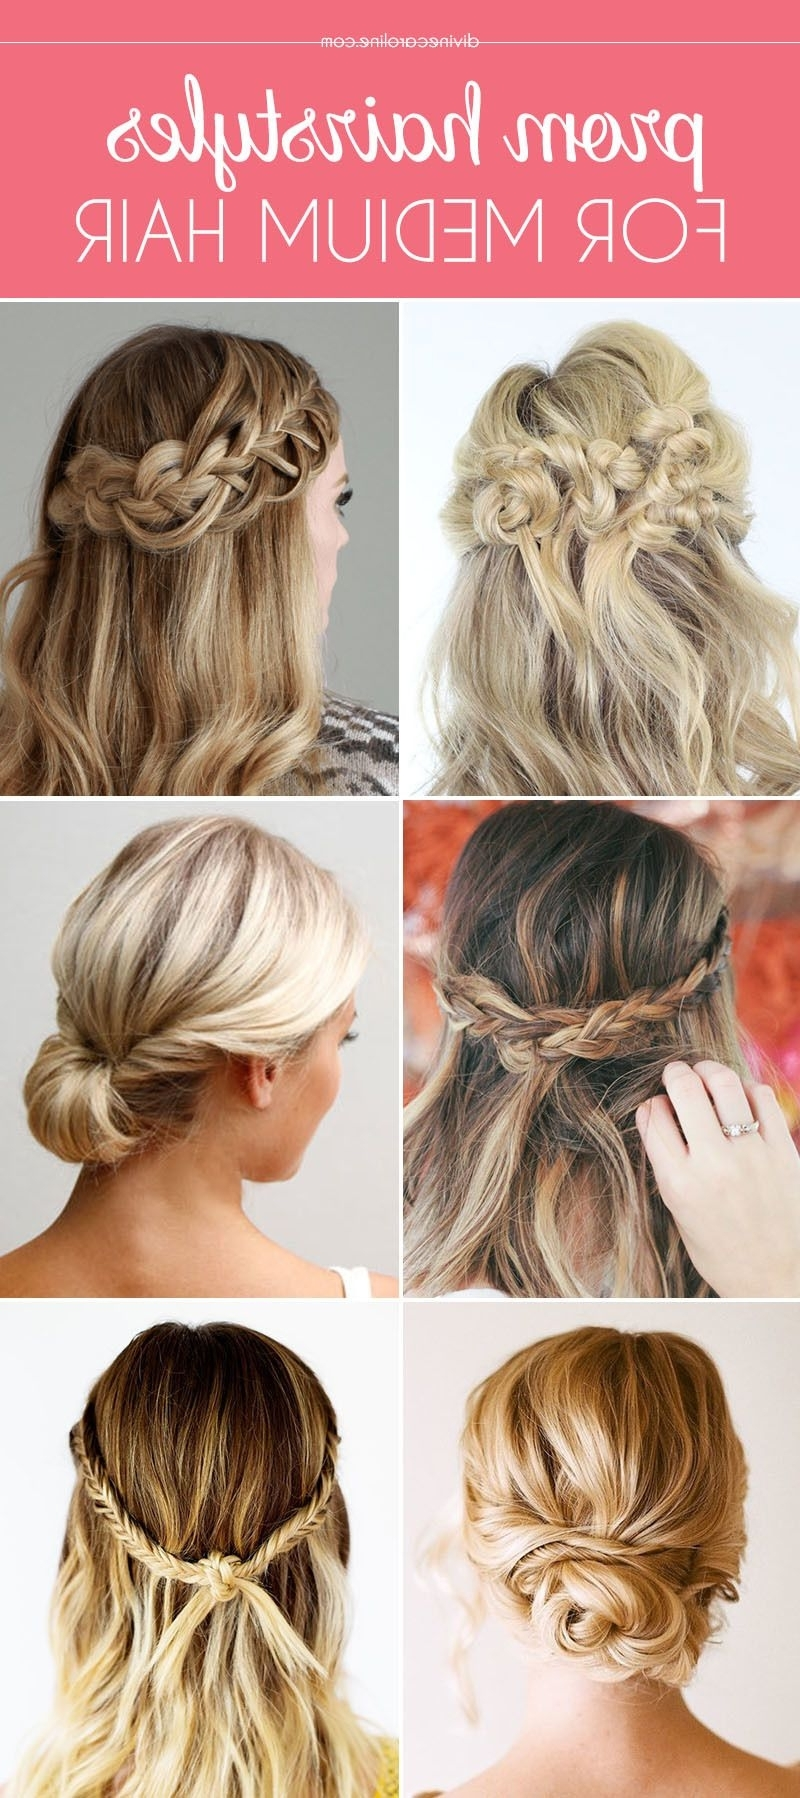 Our Favorite Prom Hairstyles For Medium Length Hair More 10+ Awesome Easy Hairstyles For Medium Length Hair For Prom